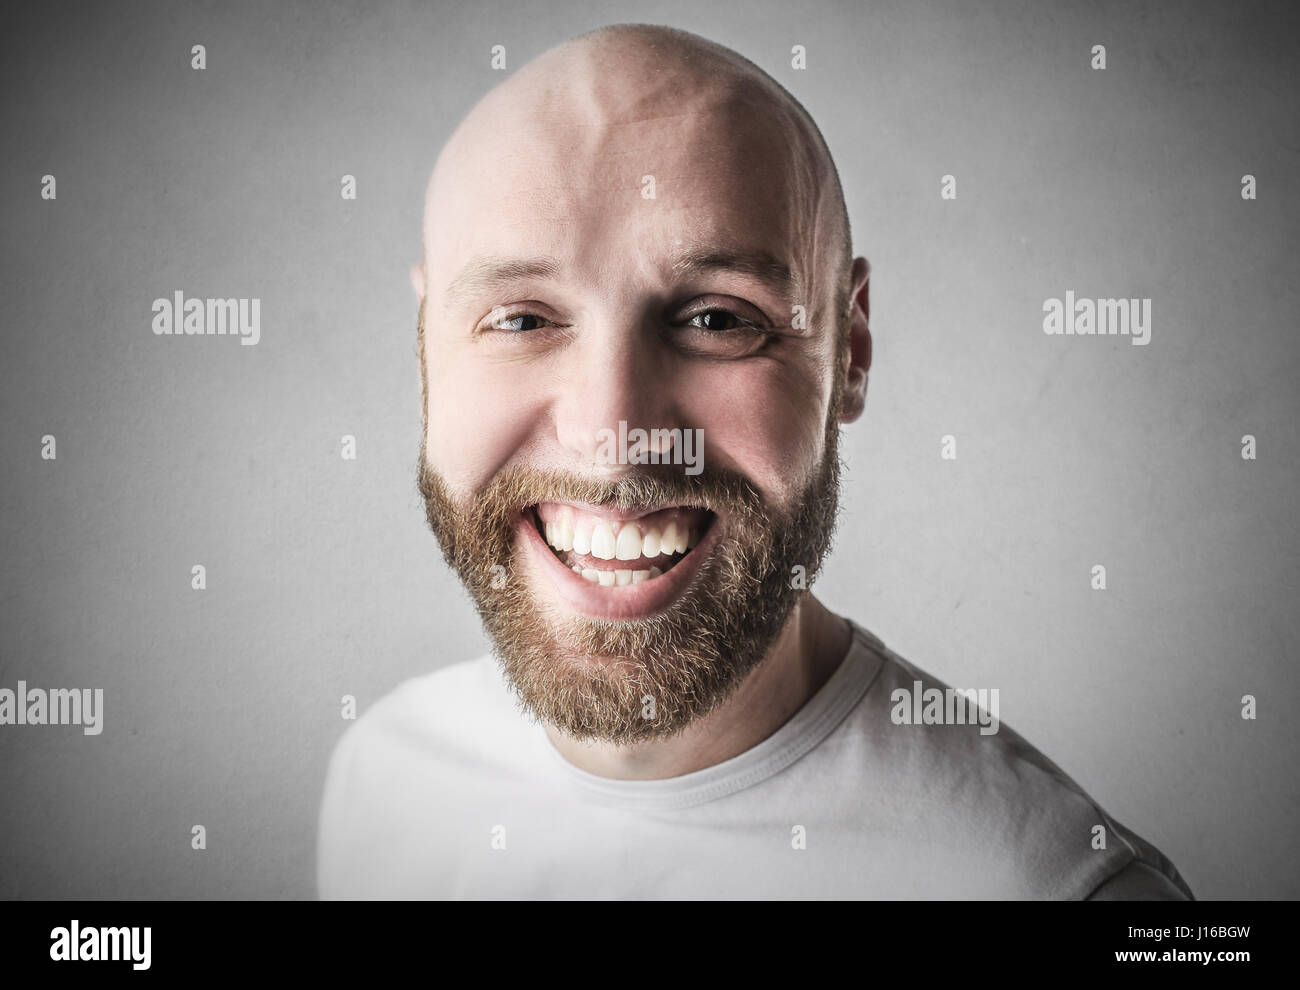 Bearded man smiling Stock Photo